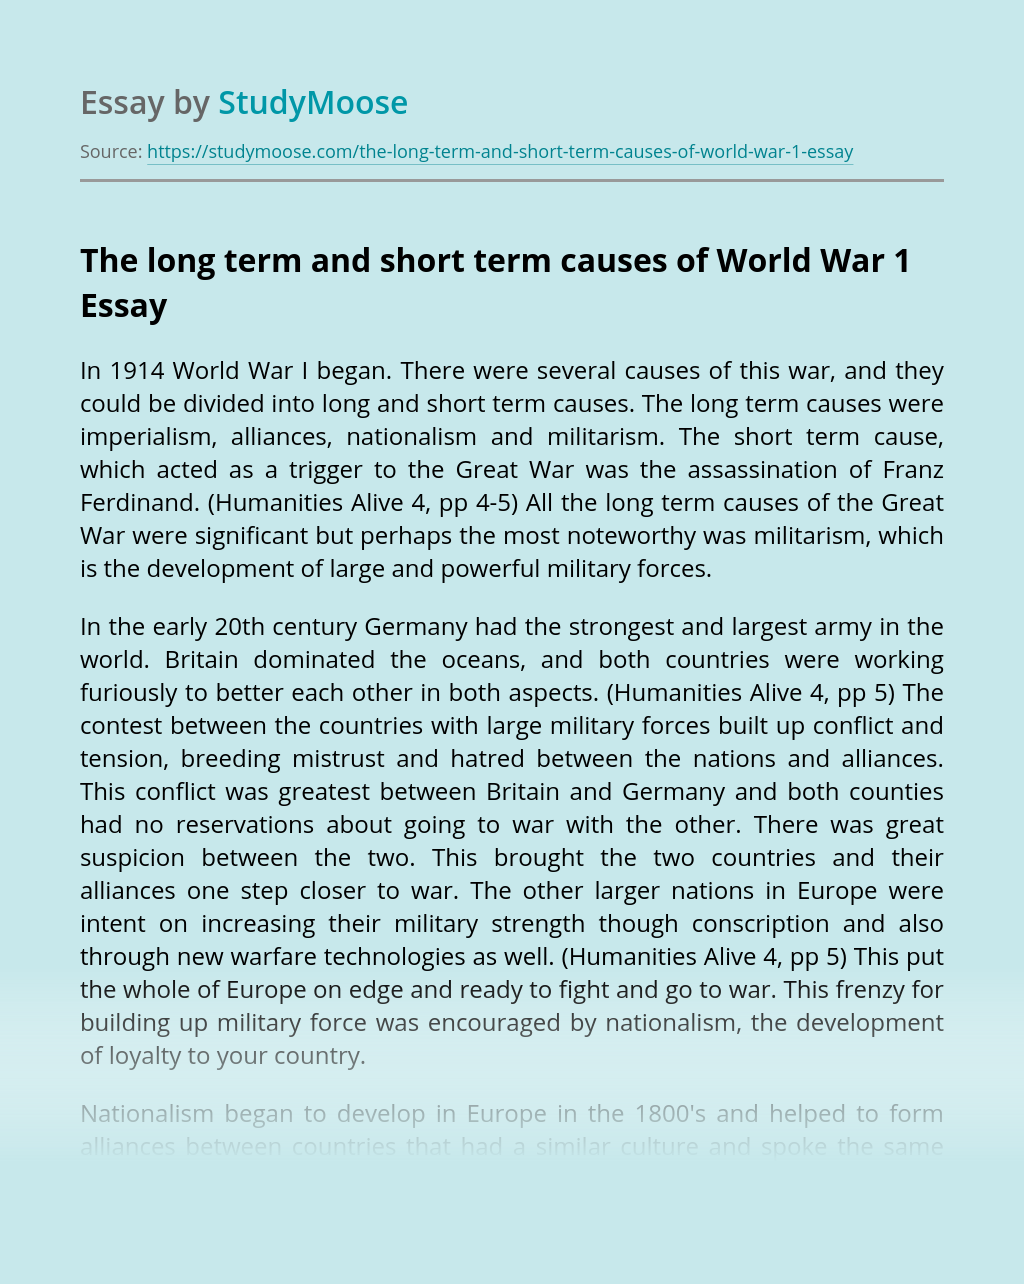 The long term and short term causes of World War 1